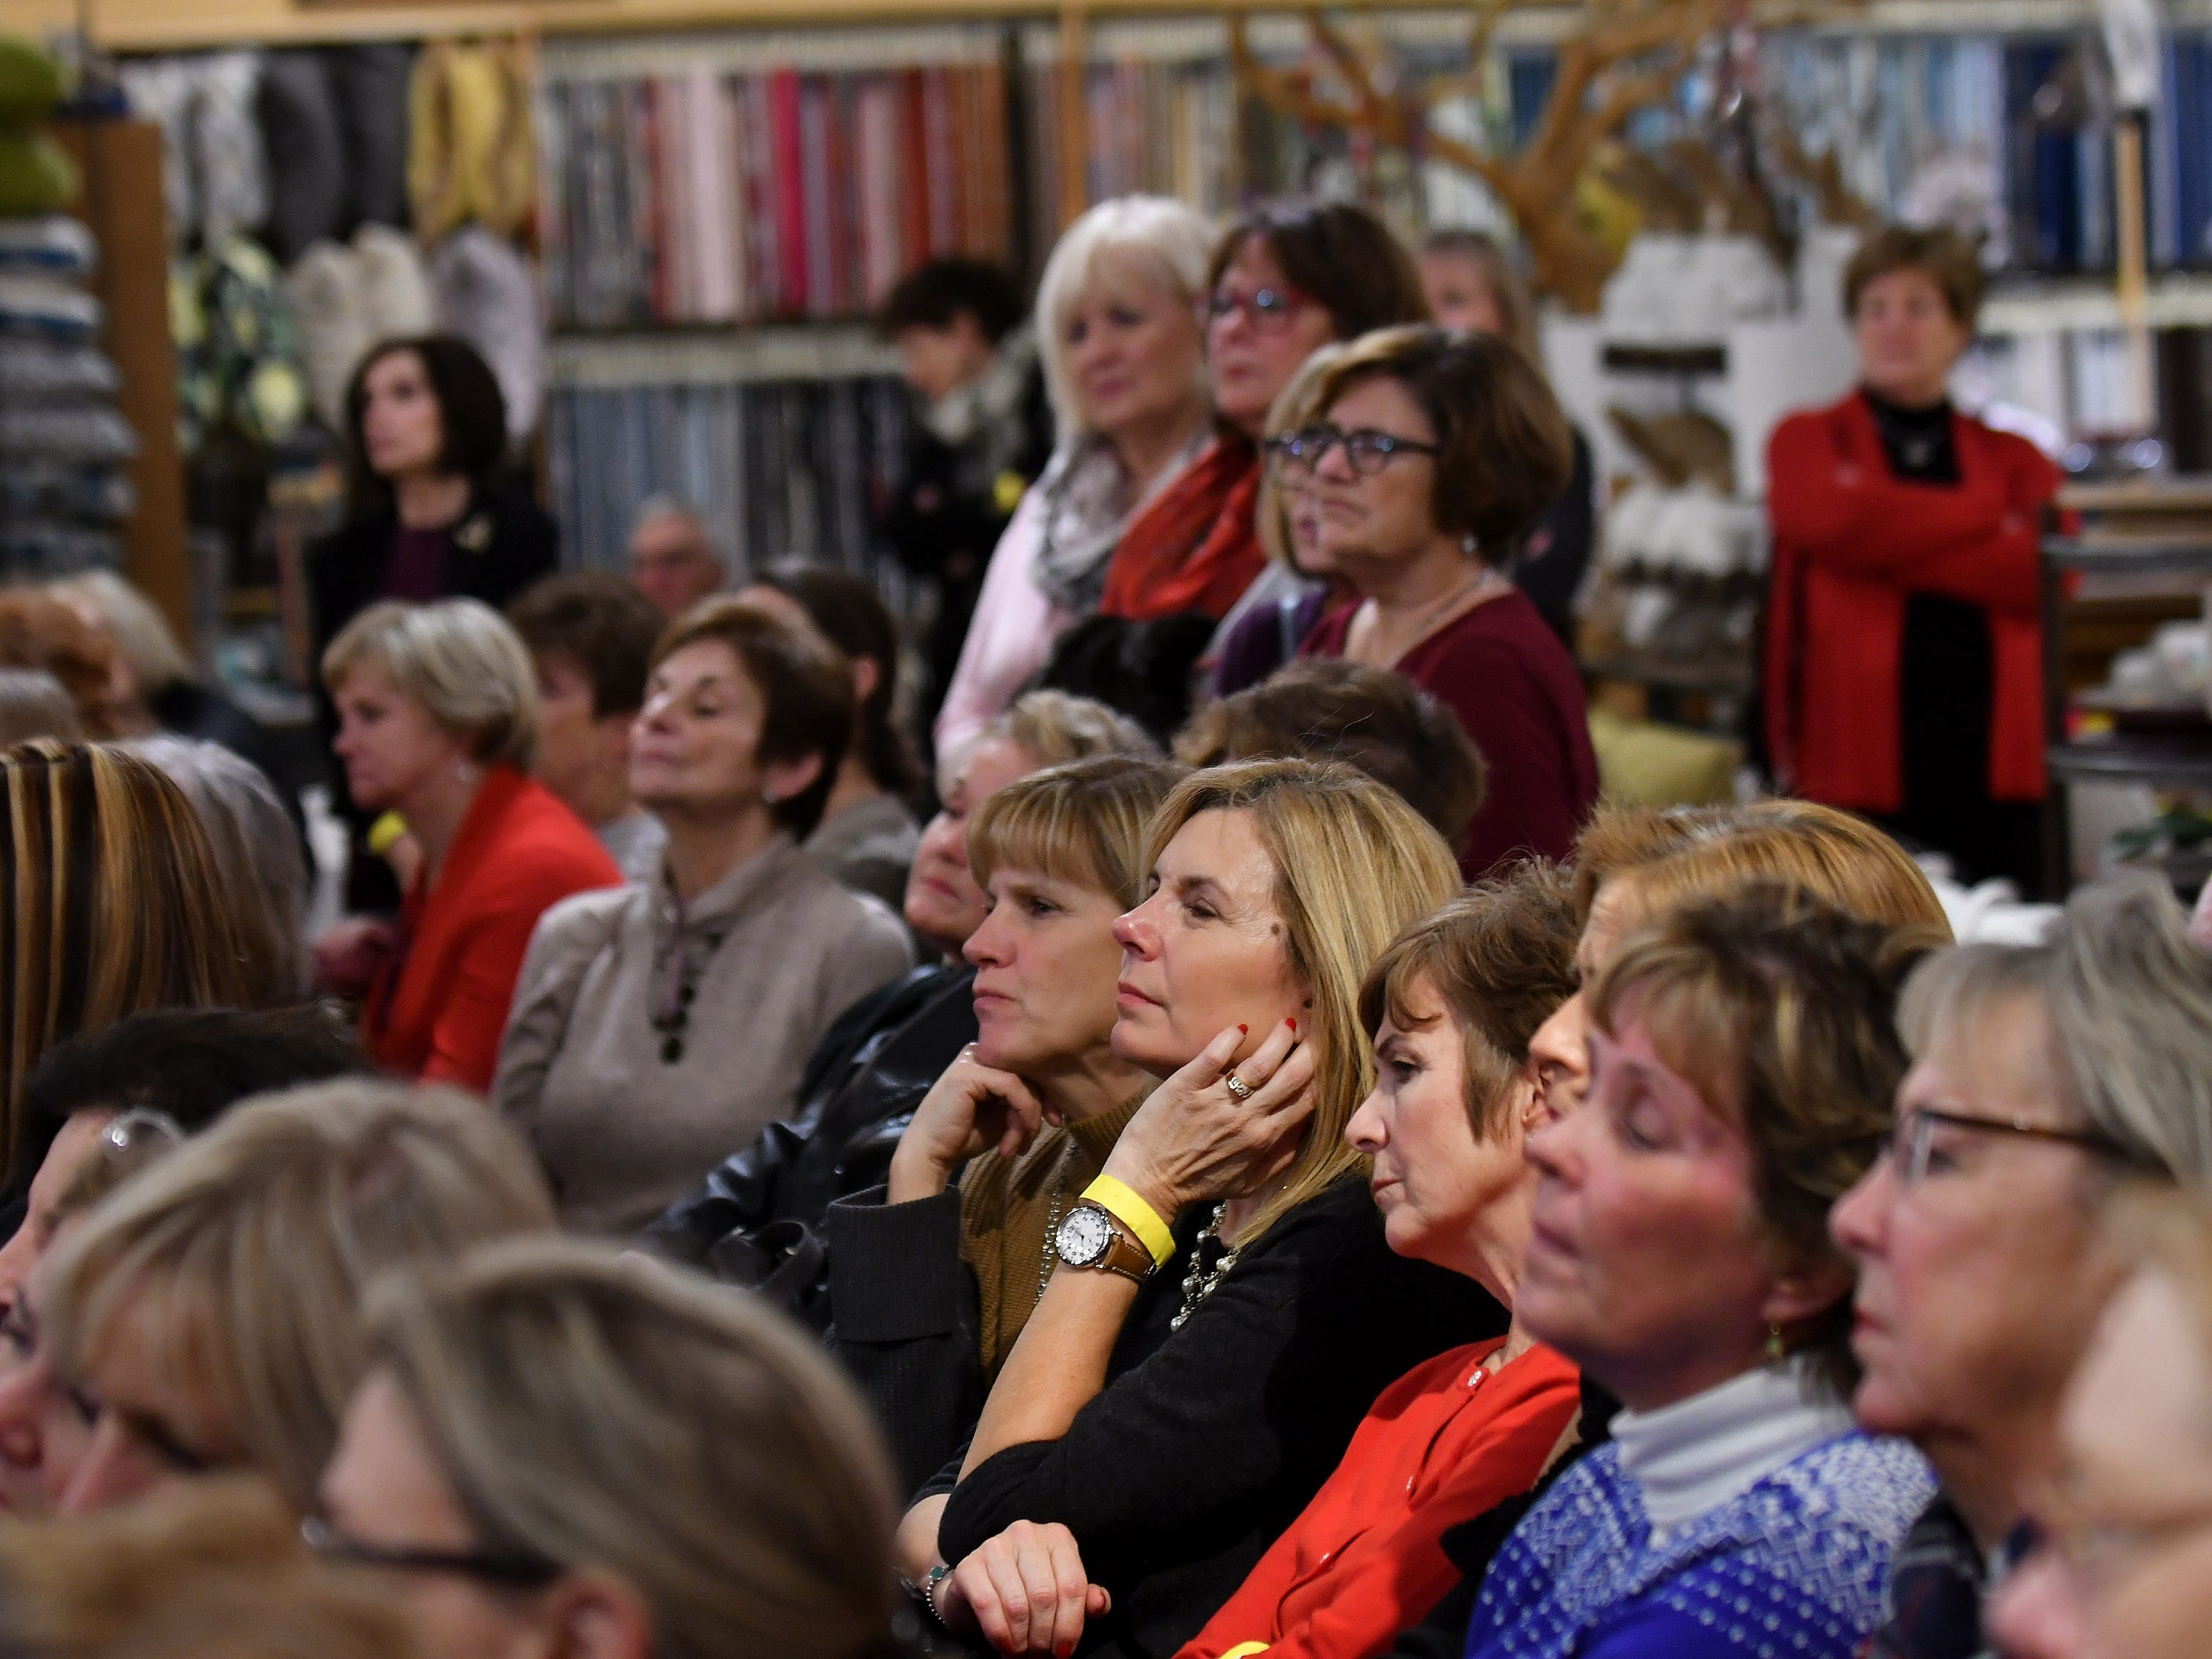 Attendees listen to the presentation by Jeffrey Jucewicz of Jeffrey Floral Architecture at the Home for the Holidays installment of the Detroit News Dish and Design event at Leon & Lulu in Clawson, Mich. on Dec. 5, 2018.   